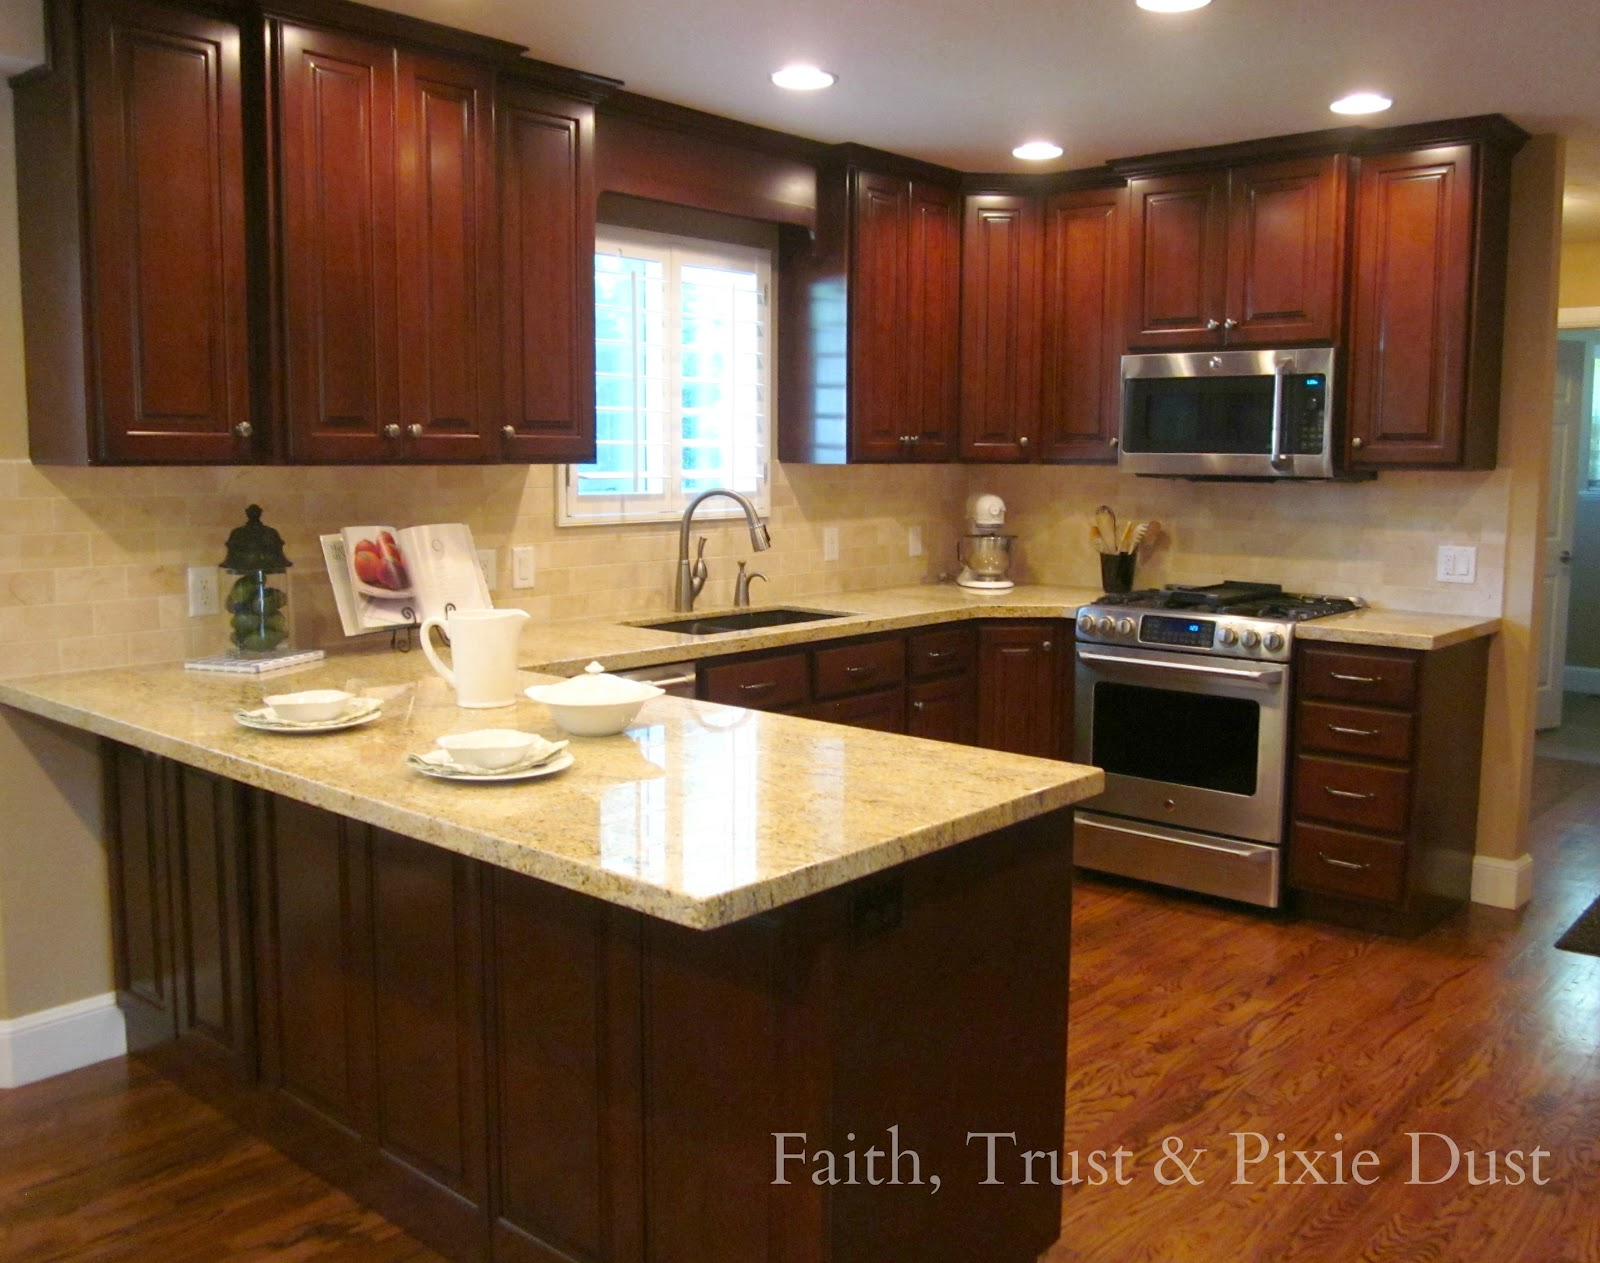 honey home spectacular kitchen remodel small shaped eat kitchen design ideas remodels photos